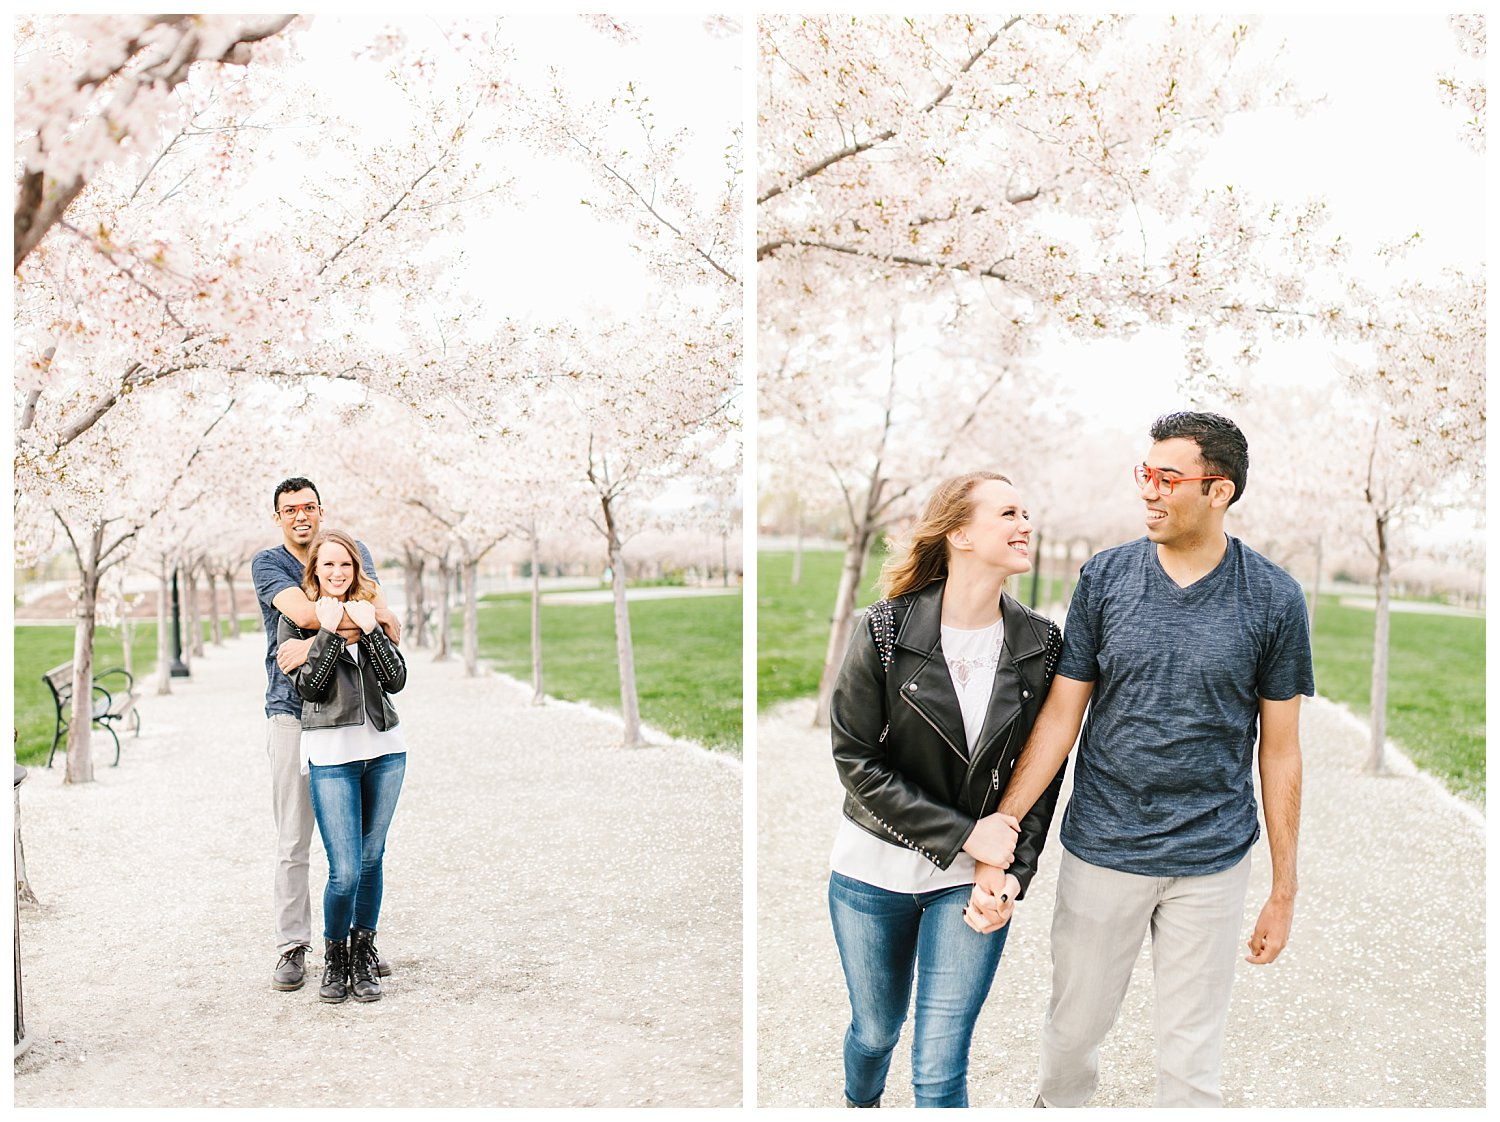 Spring Blossoms Engagement Session 4